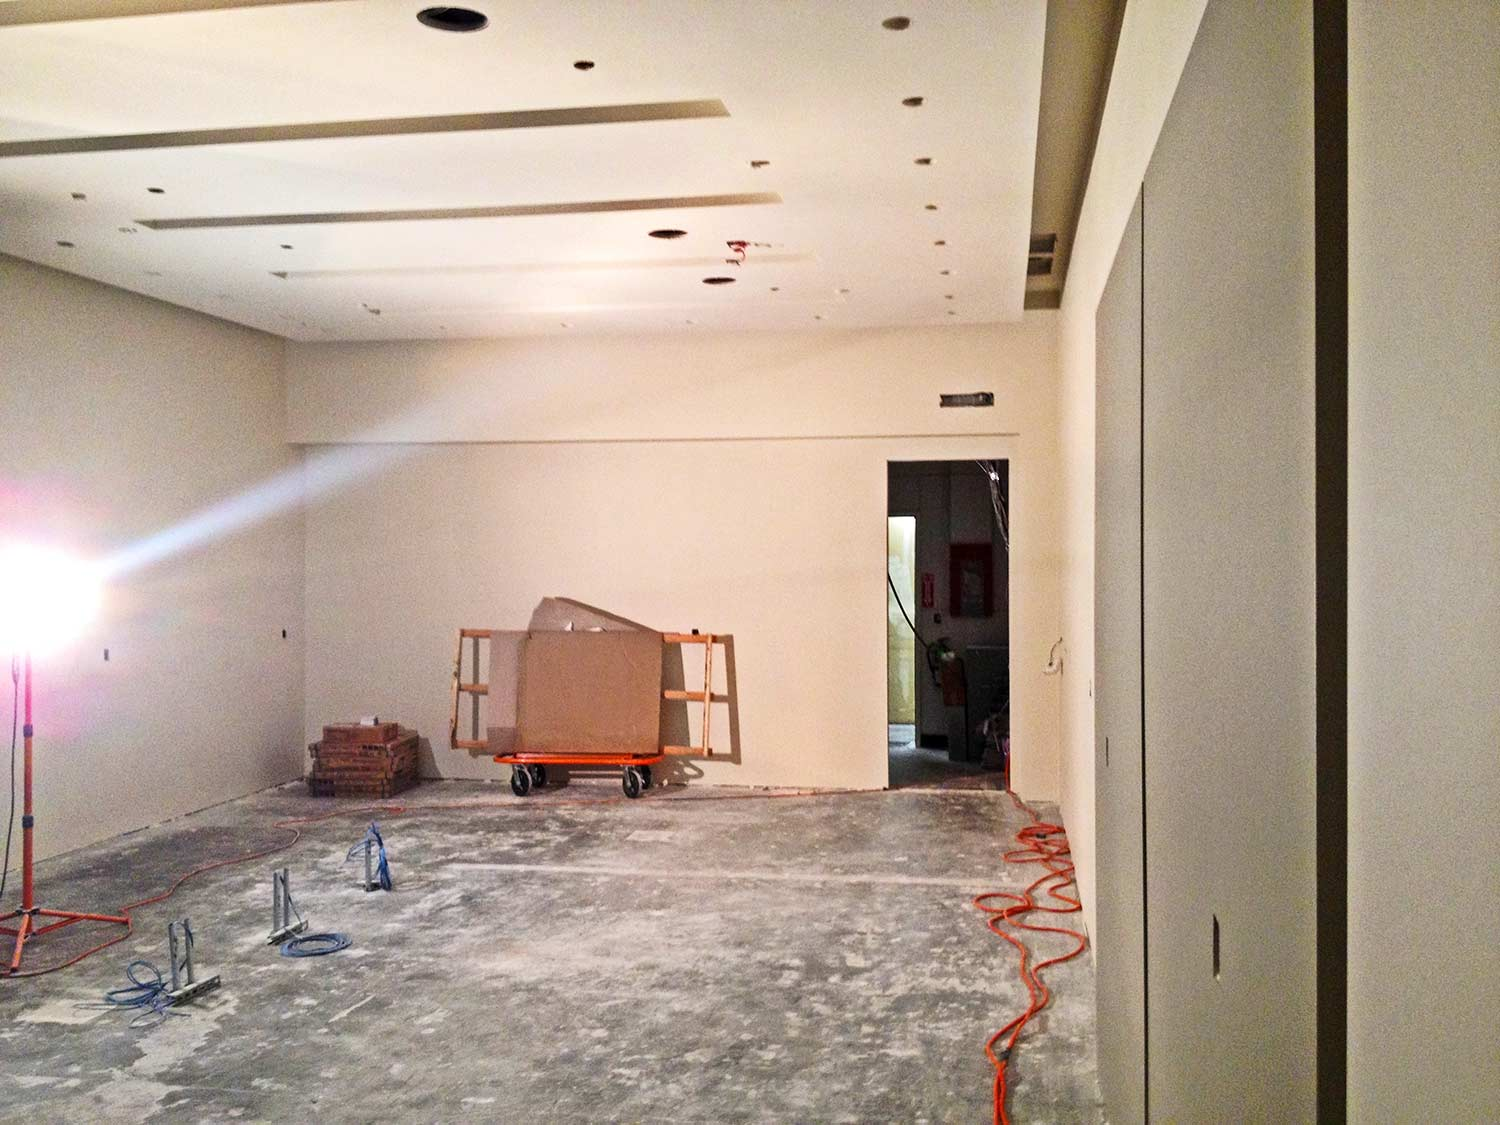 Progress made on construction of Isadora store